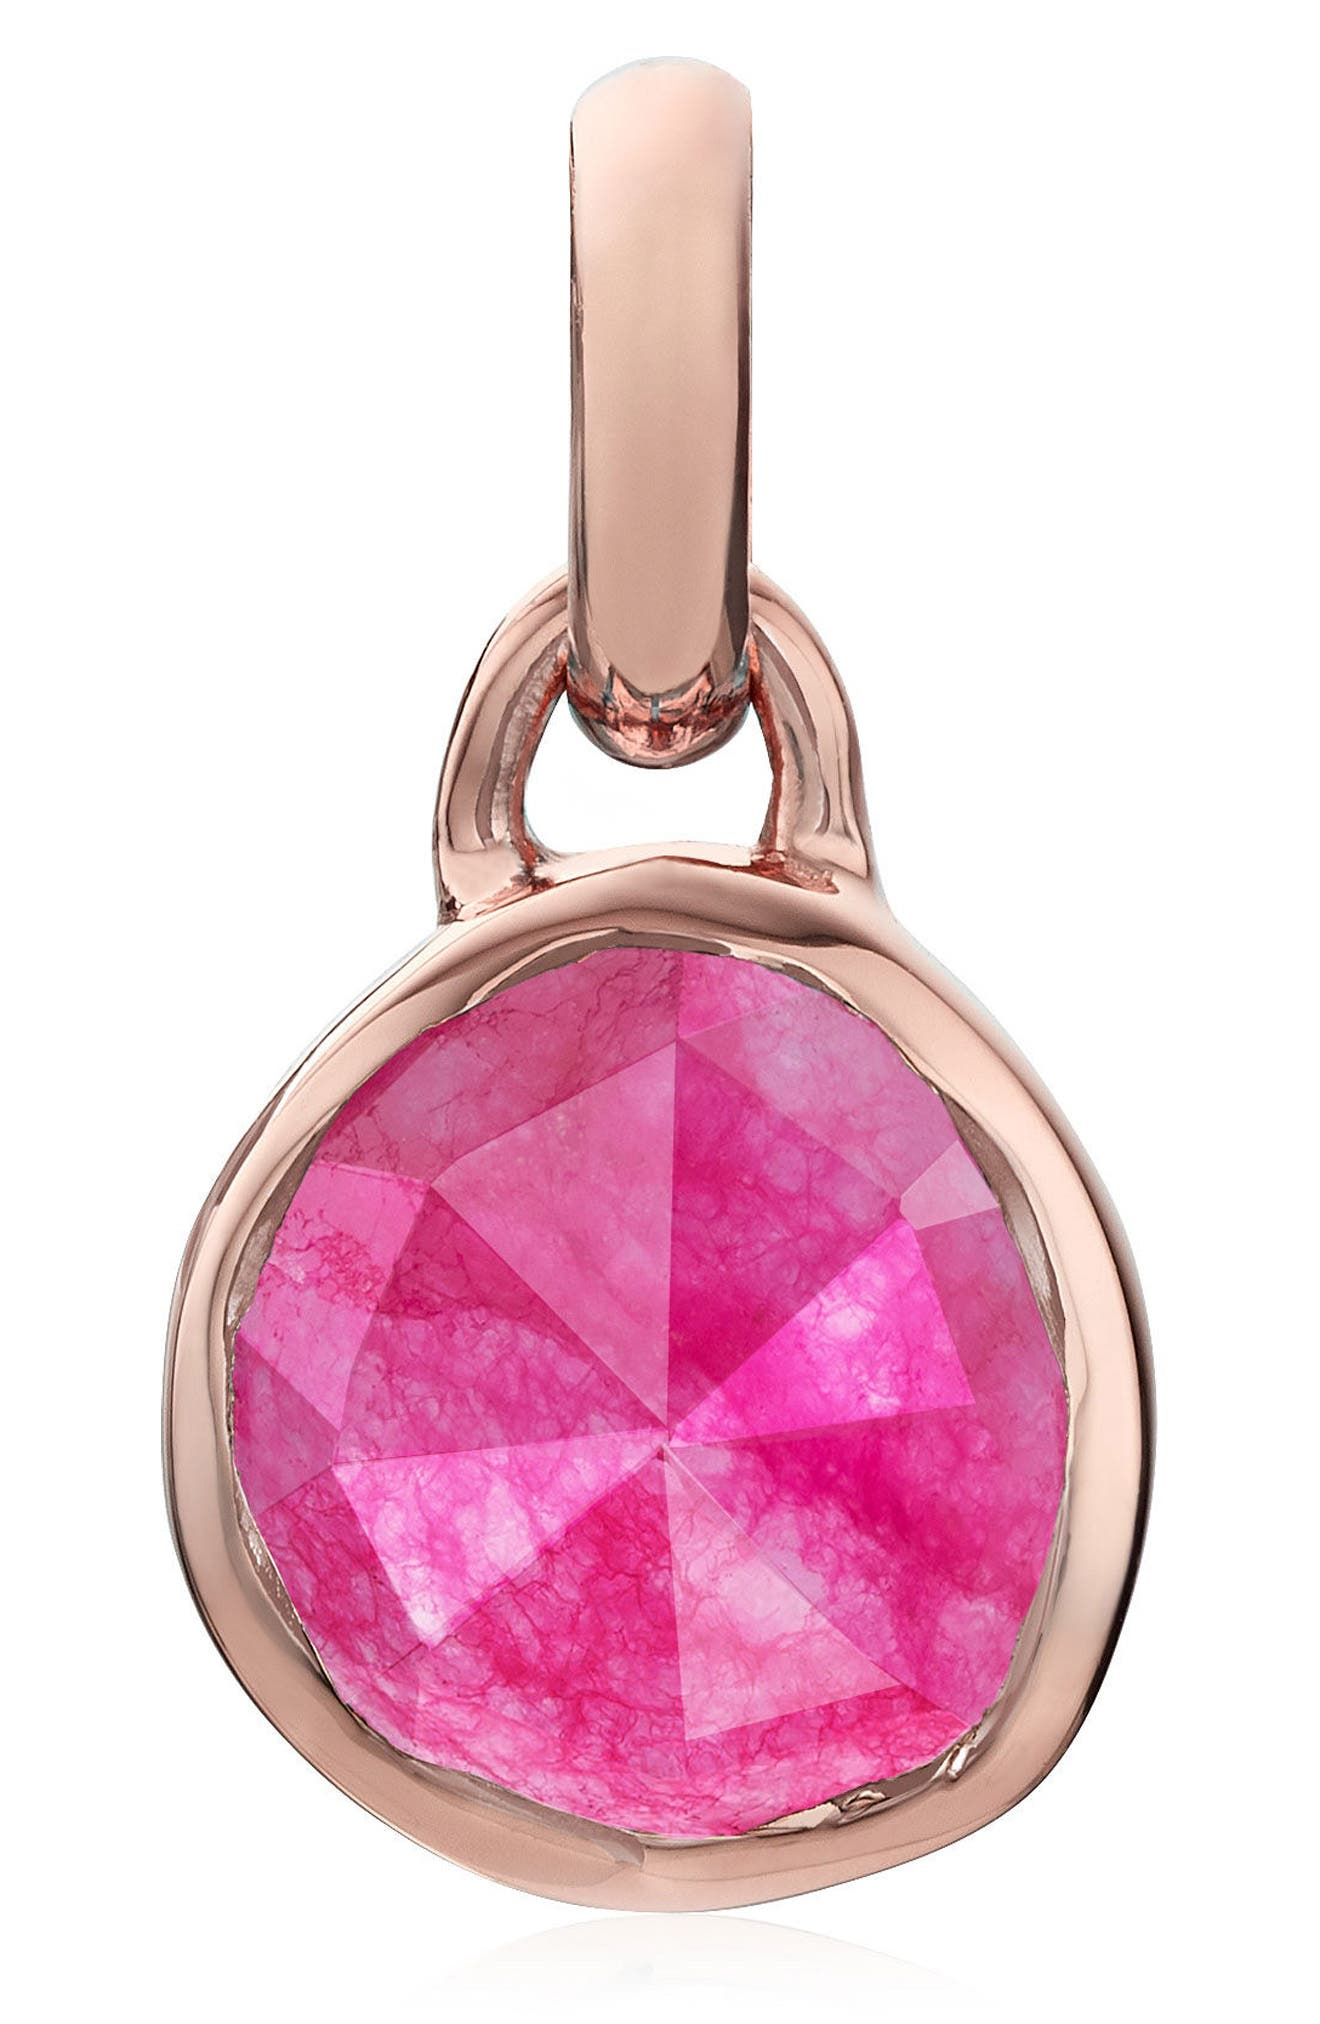 Siren Mini Semiprecious Stone Bezel Pendant,                             Main thumbnail 1, color,                             Rose Gold/ Pink Quartz